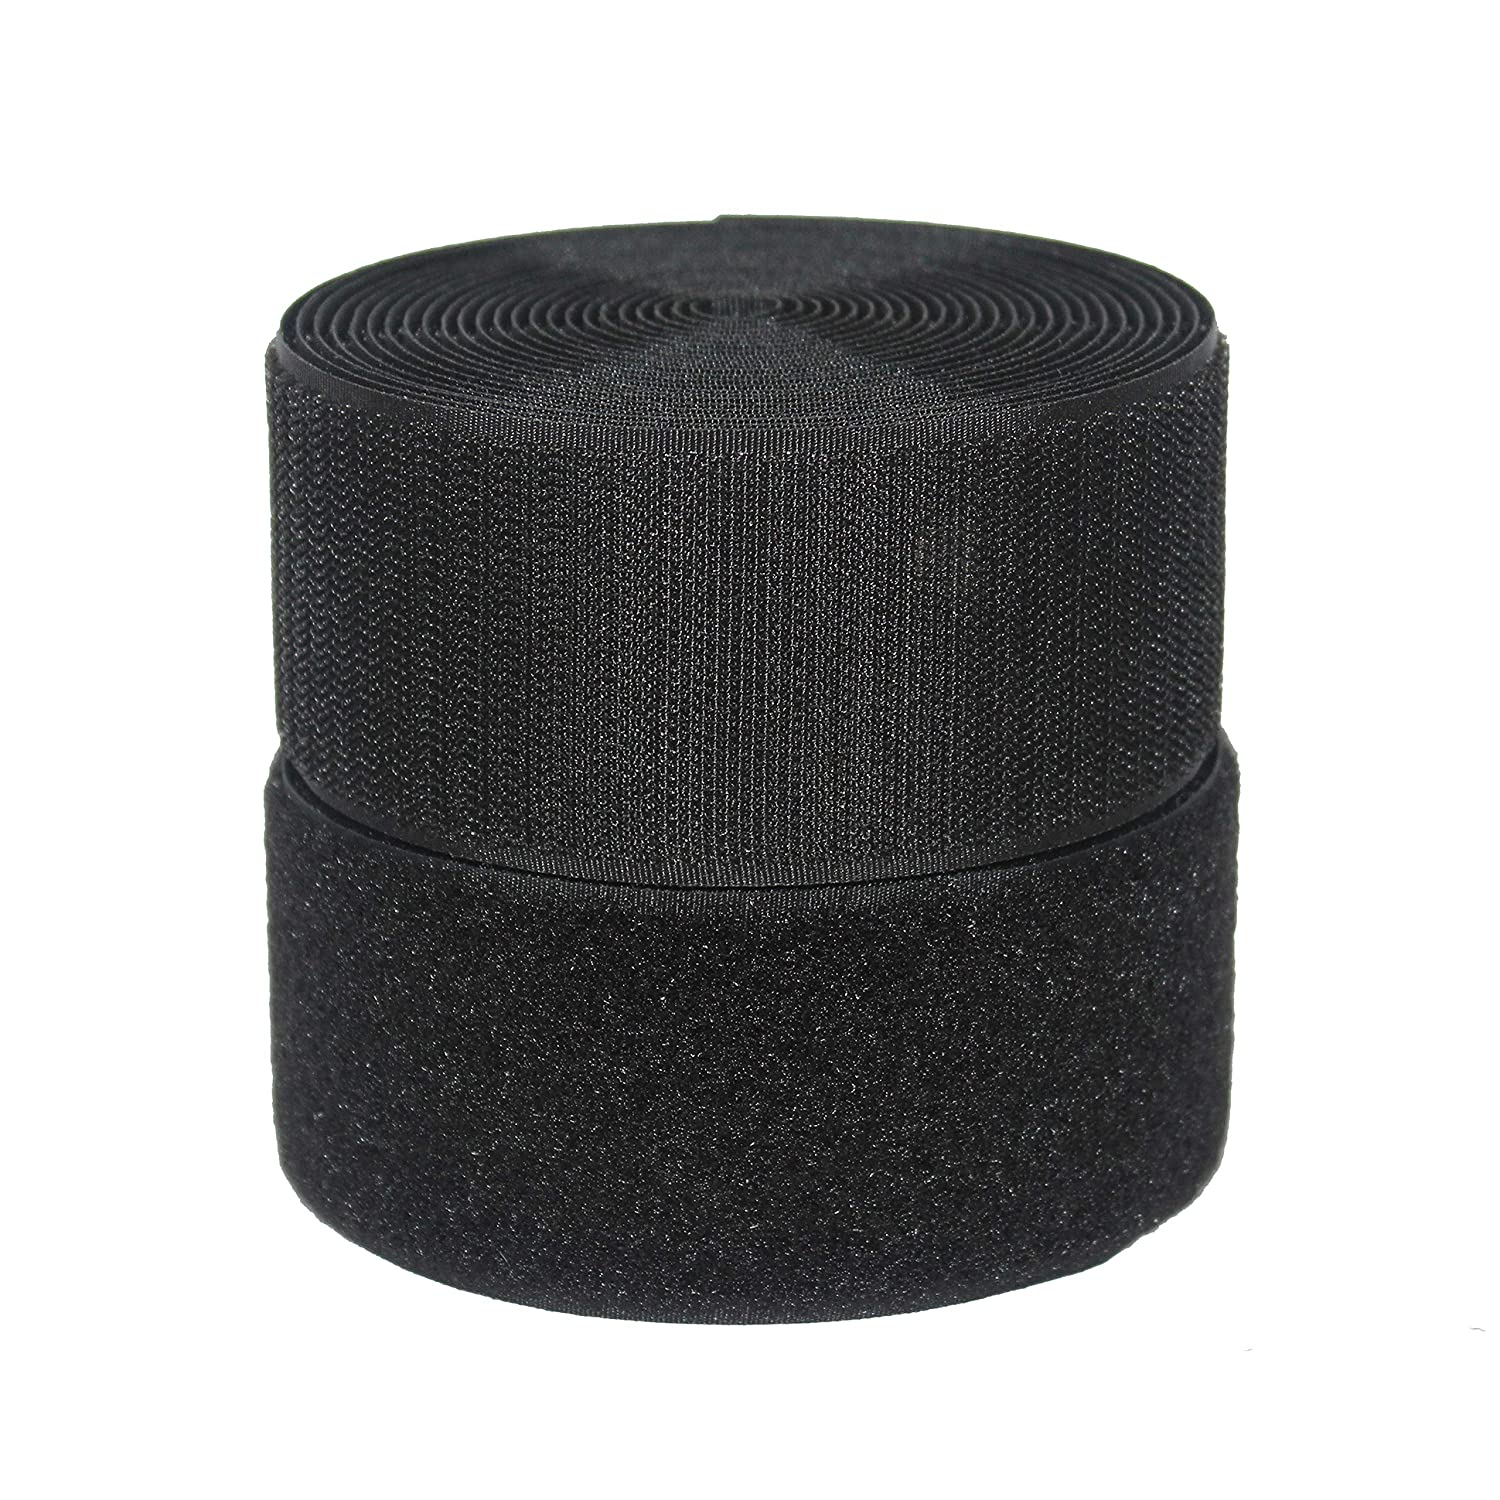 1in x 9yd HUAYY 1 Inches Width 9 Yards Length,Sew on Hook and Loop Style,Non-Adhesive Nylon Strips Fabric,Black